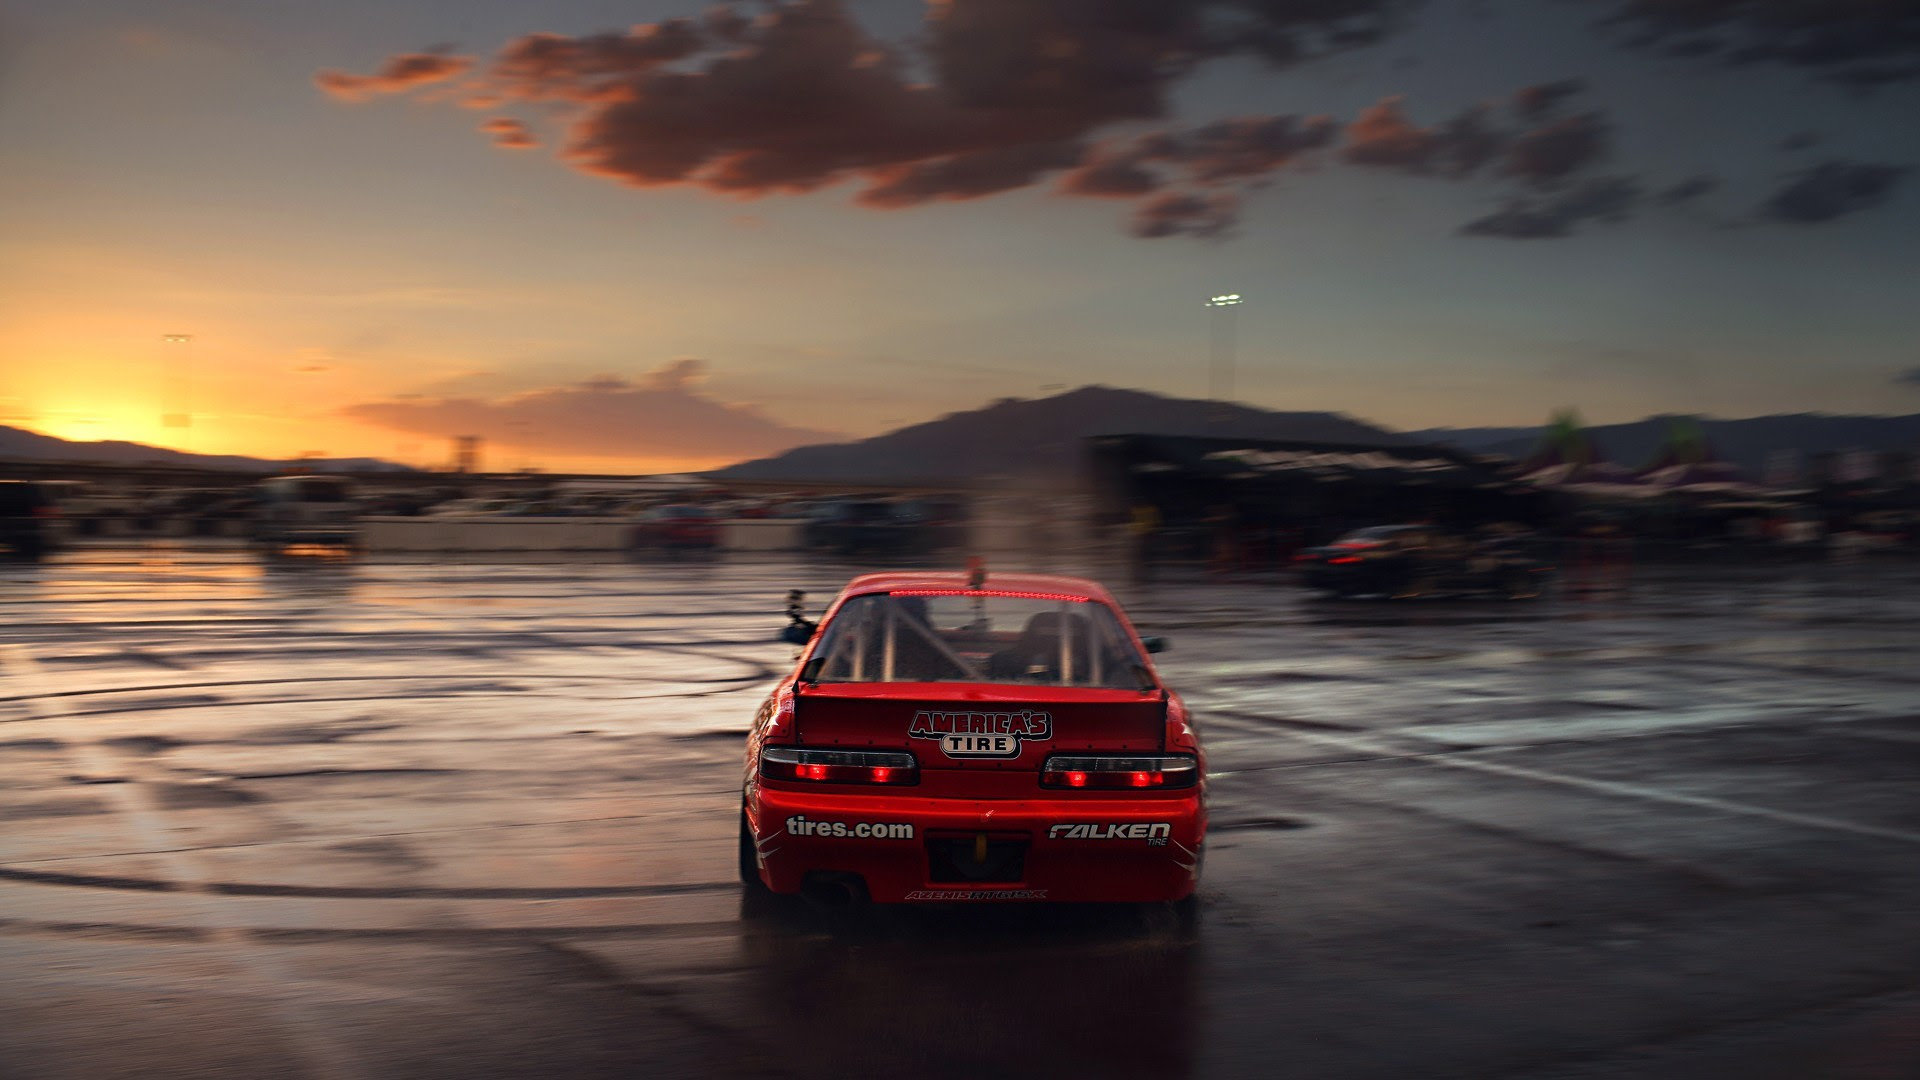 Drift, HD Cars, 4k Wallpapers, Images, Backgrounds, Photos and Pictures